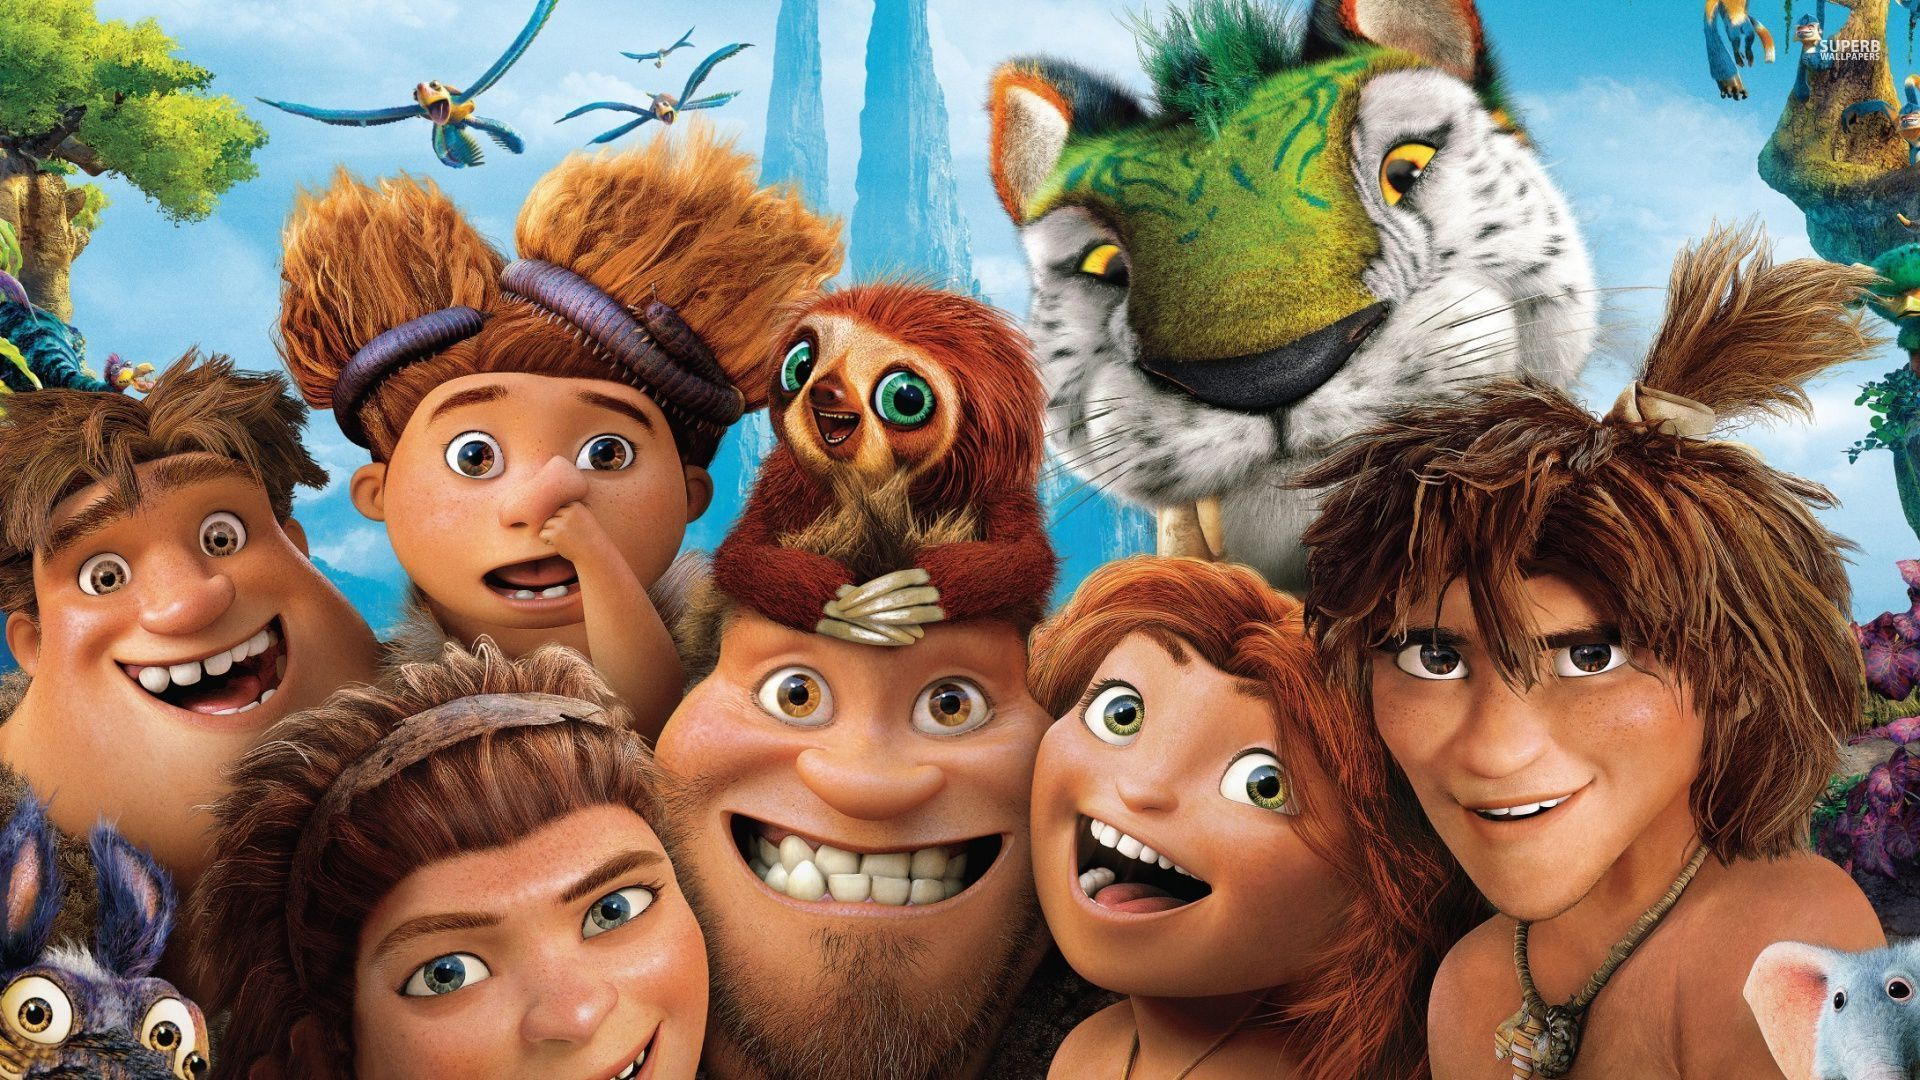 The Croods 2 widescreen wallpapers